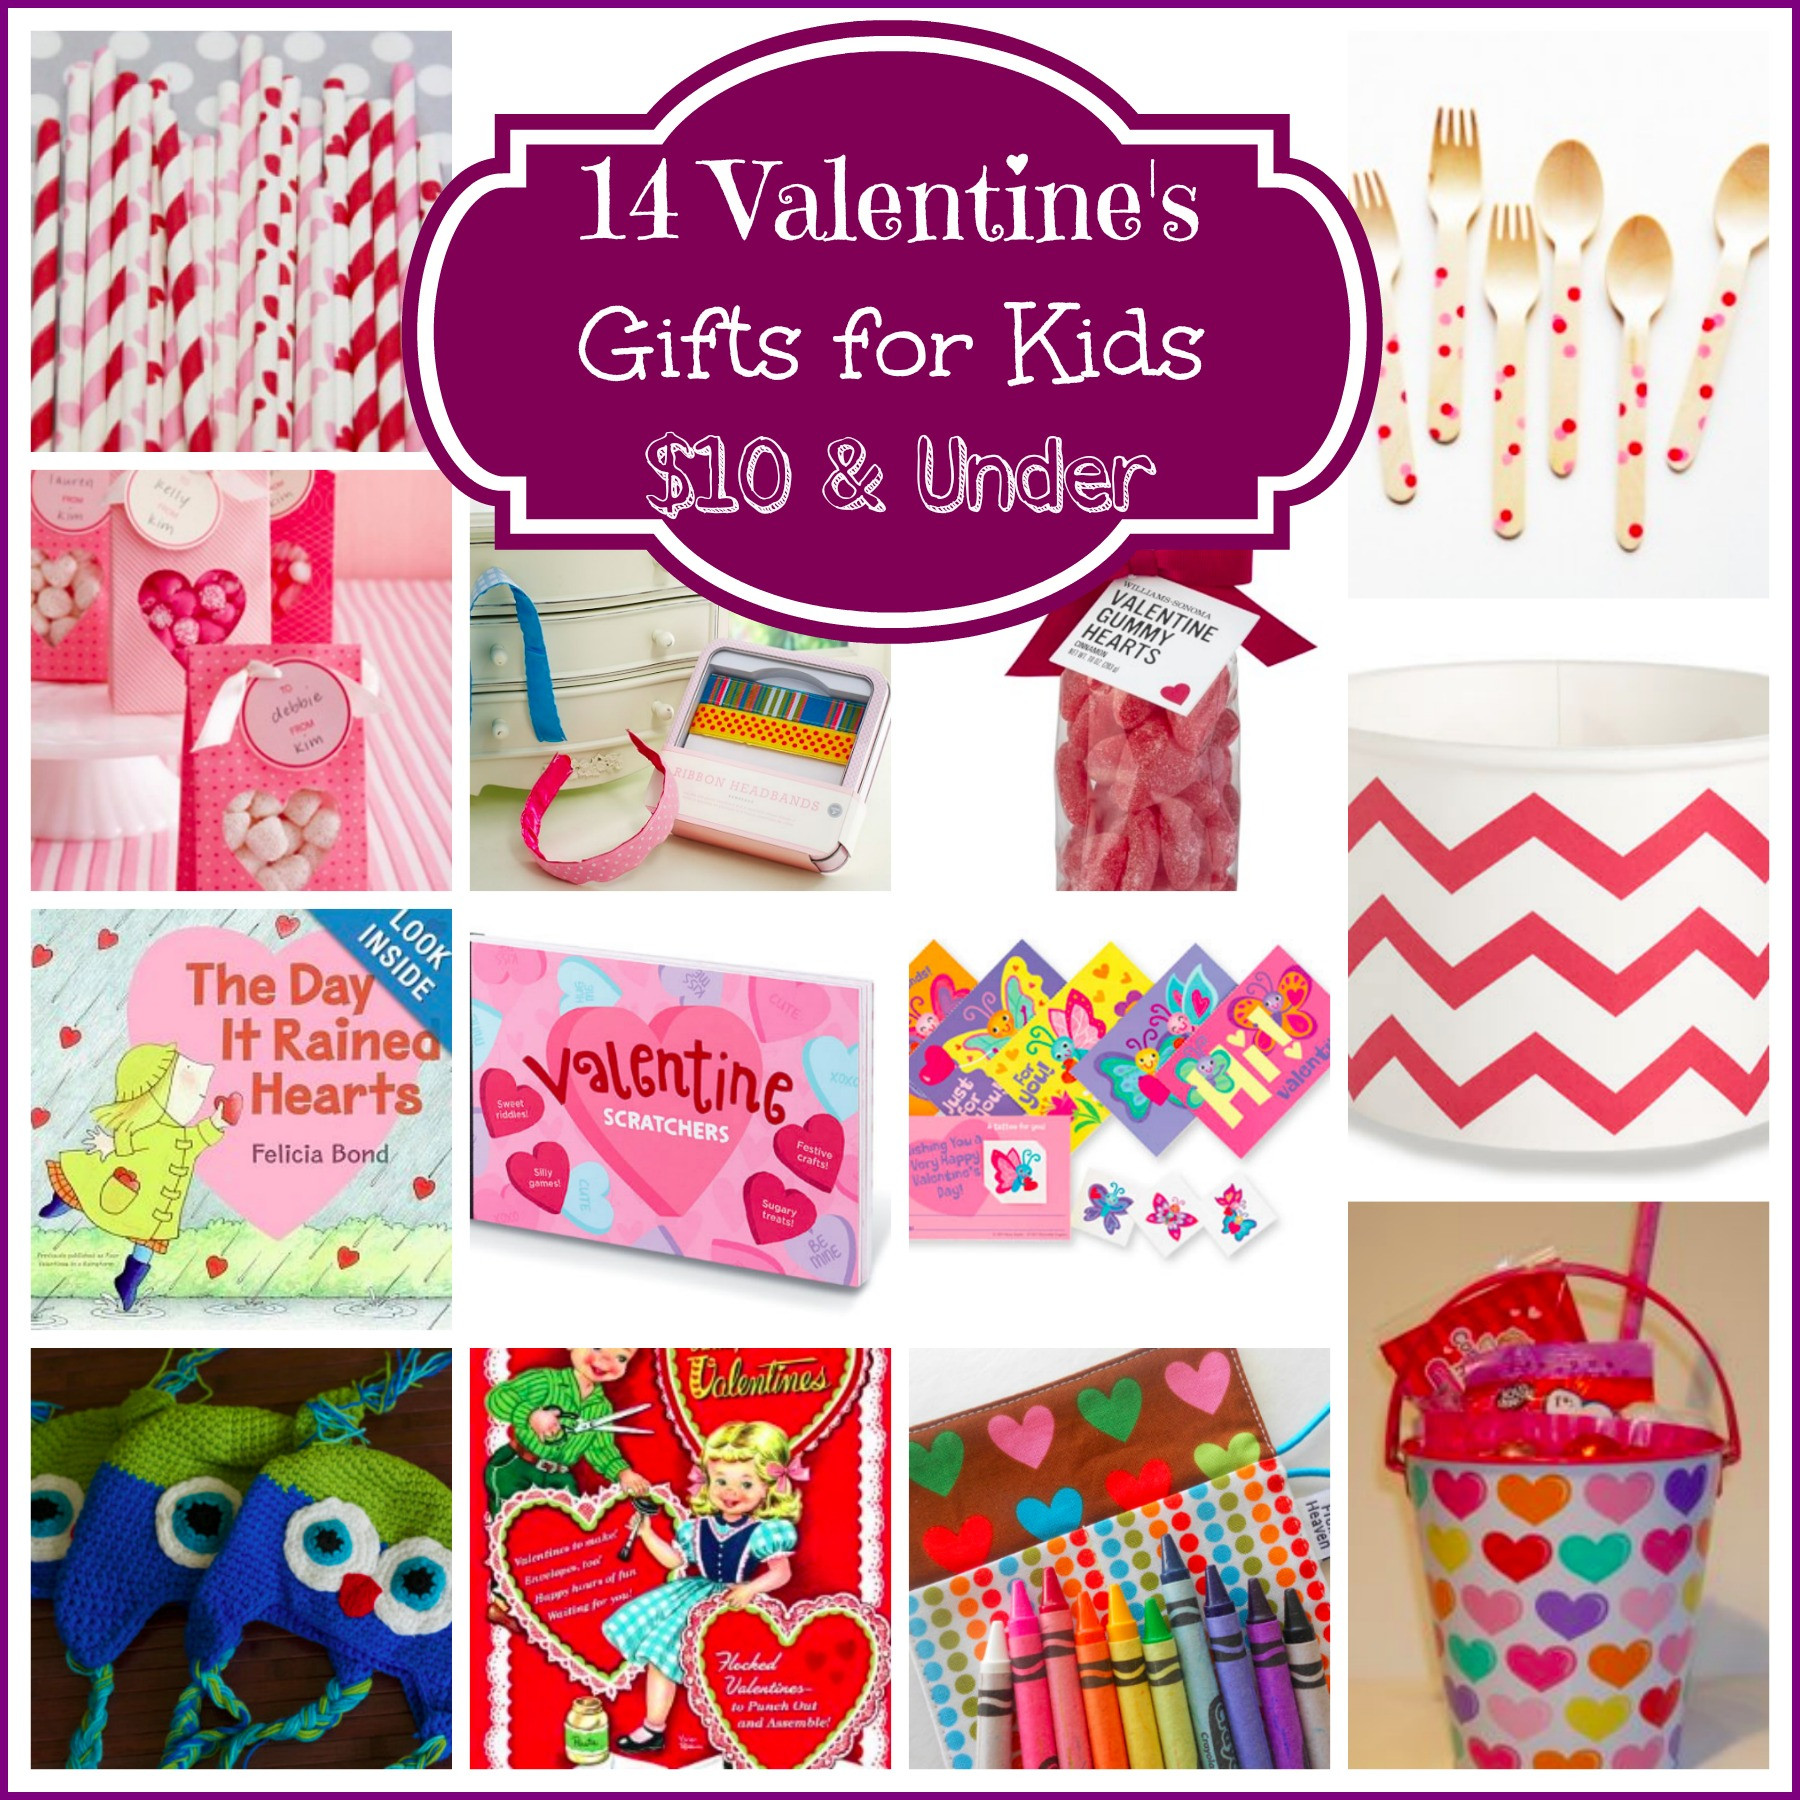 Valentines Gift Ideas For Toddlers  14 Valentine's Day Gifts for Kids $10 & Under